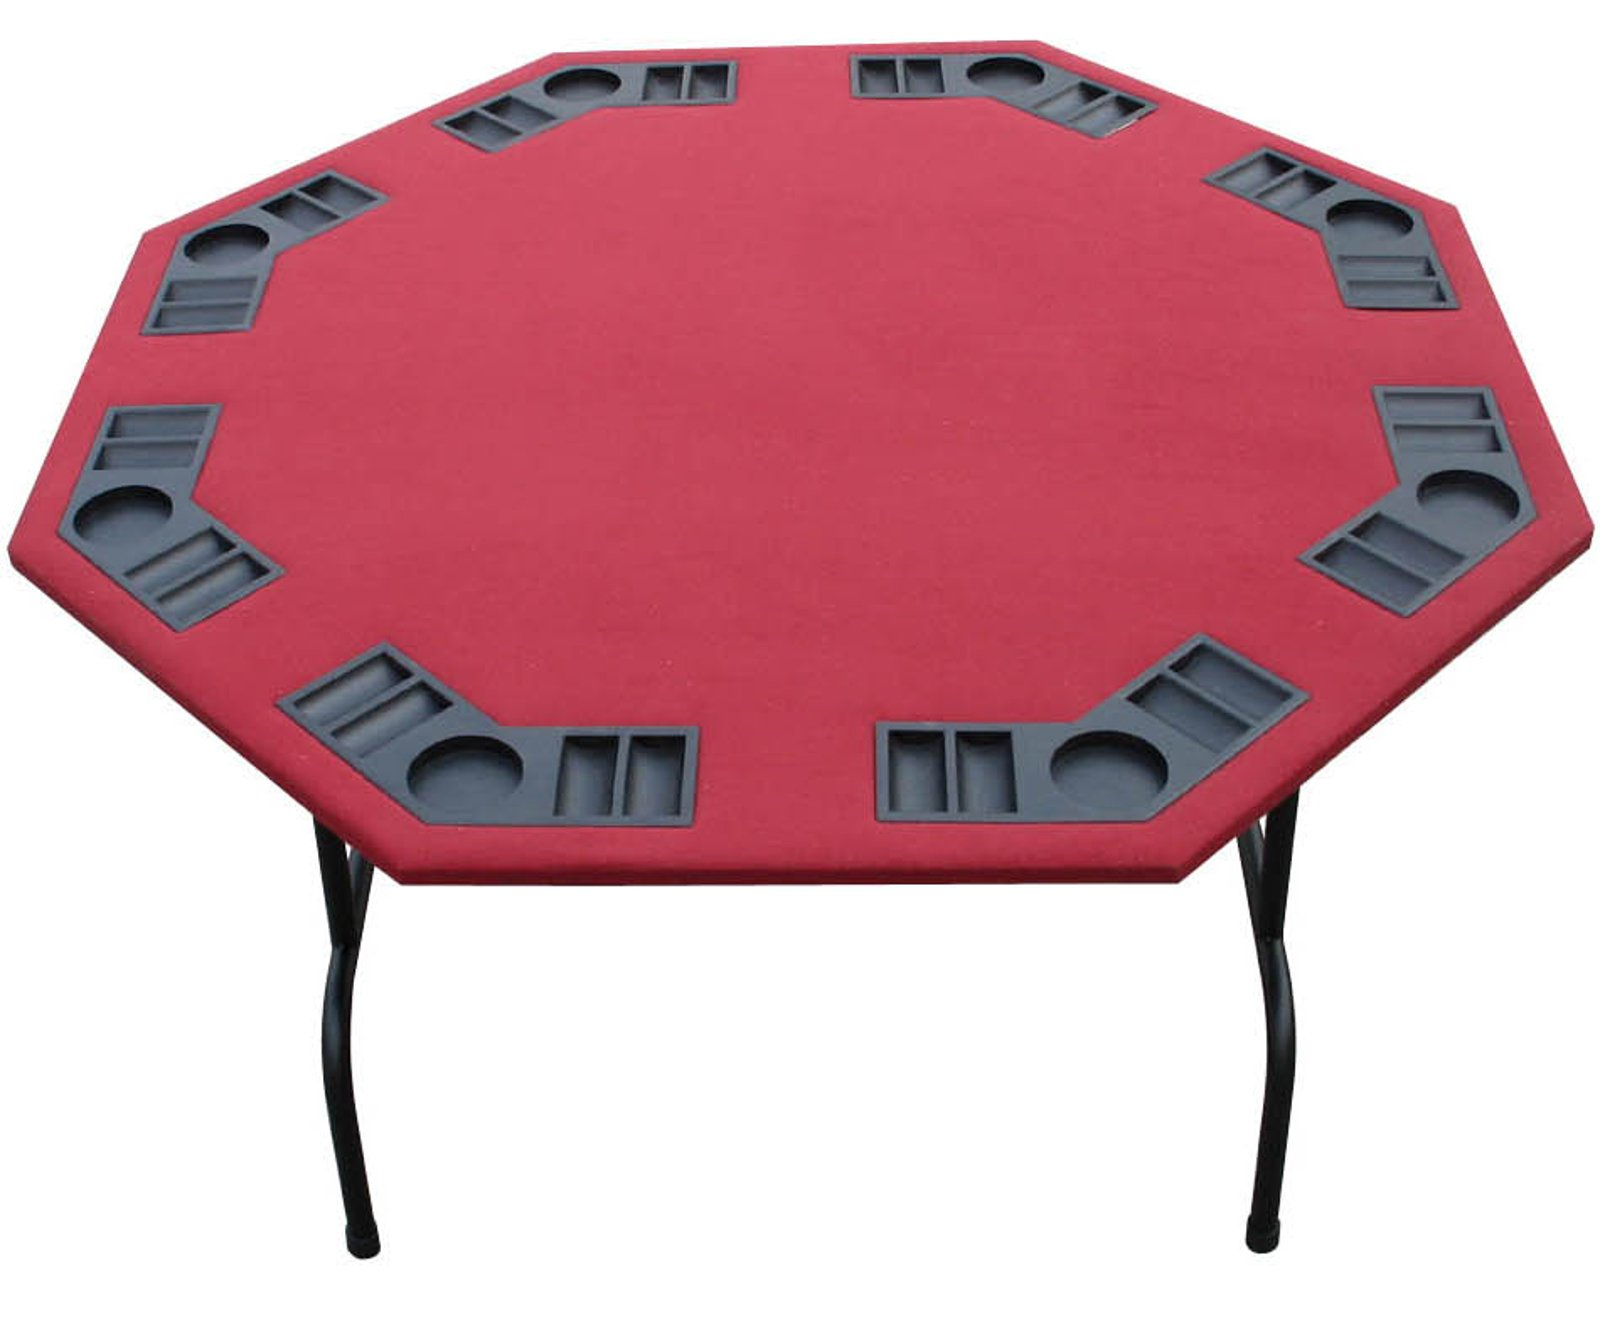 Folding Octagon Poker Table For Texas Holdem, Cards & Game. 52'' In Burgundy, Green Or Black Felt, XL 60'' In Burgundy. Steel Legs, Built In Cup holders And Chip Trays (Burgundy, 52'')